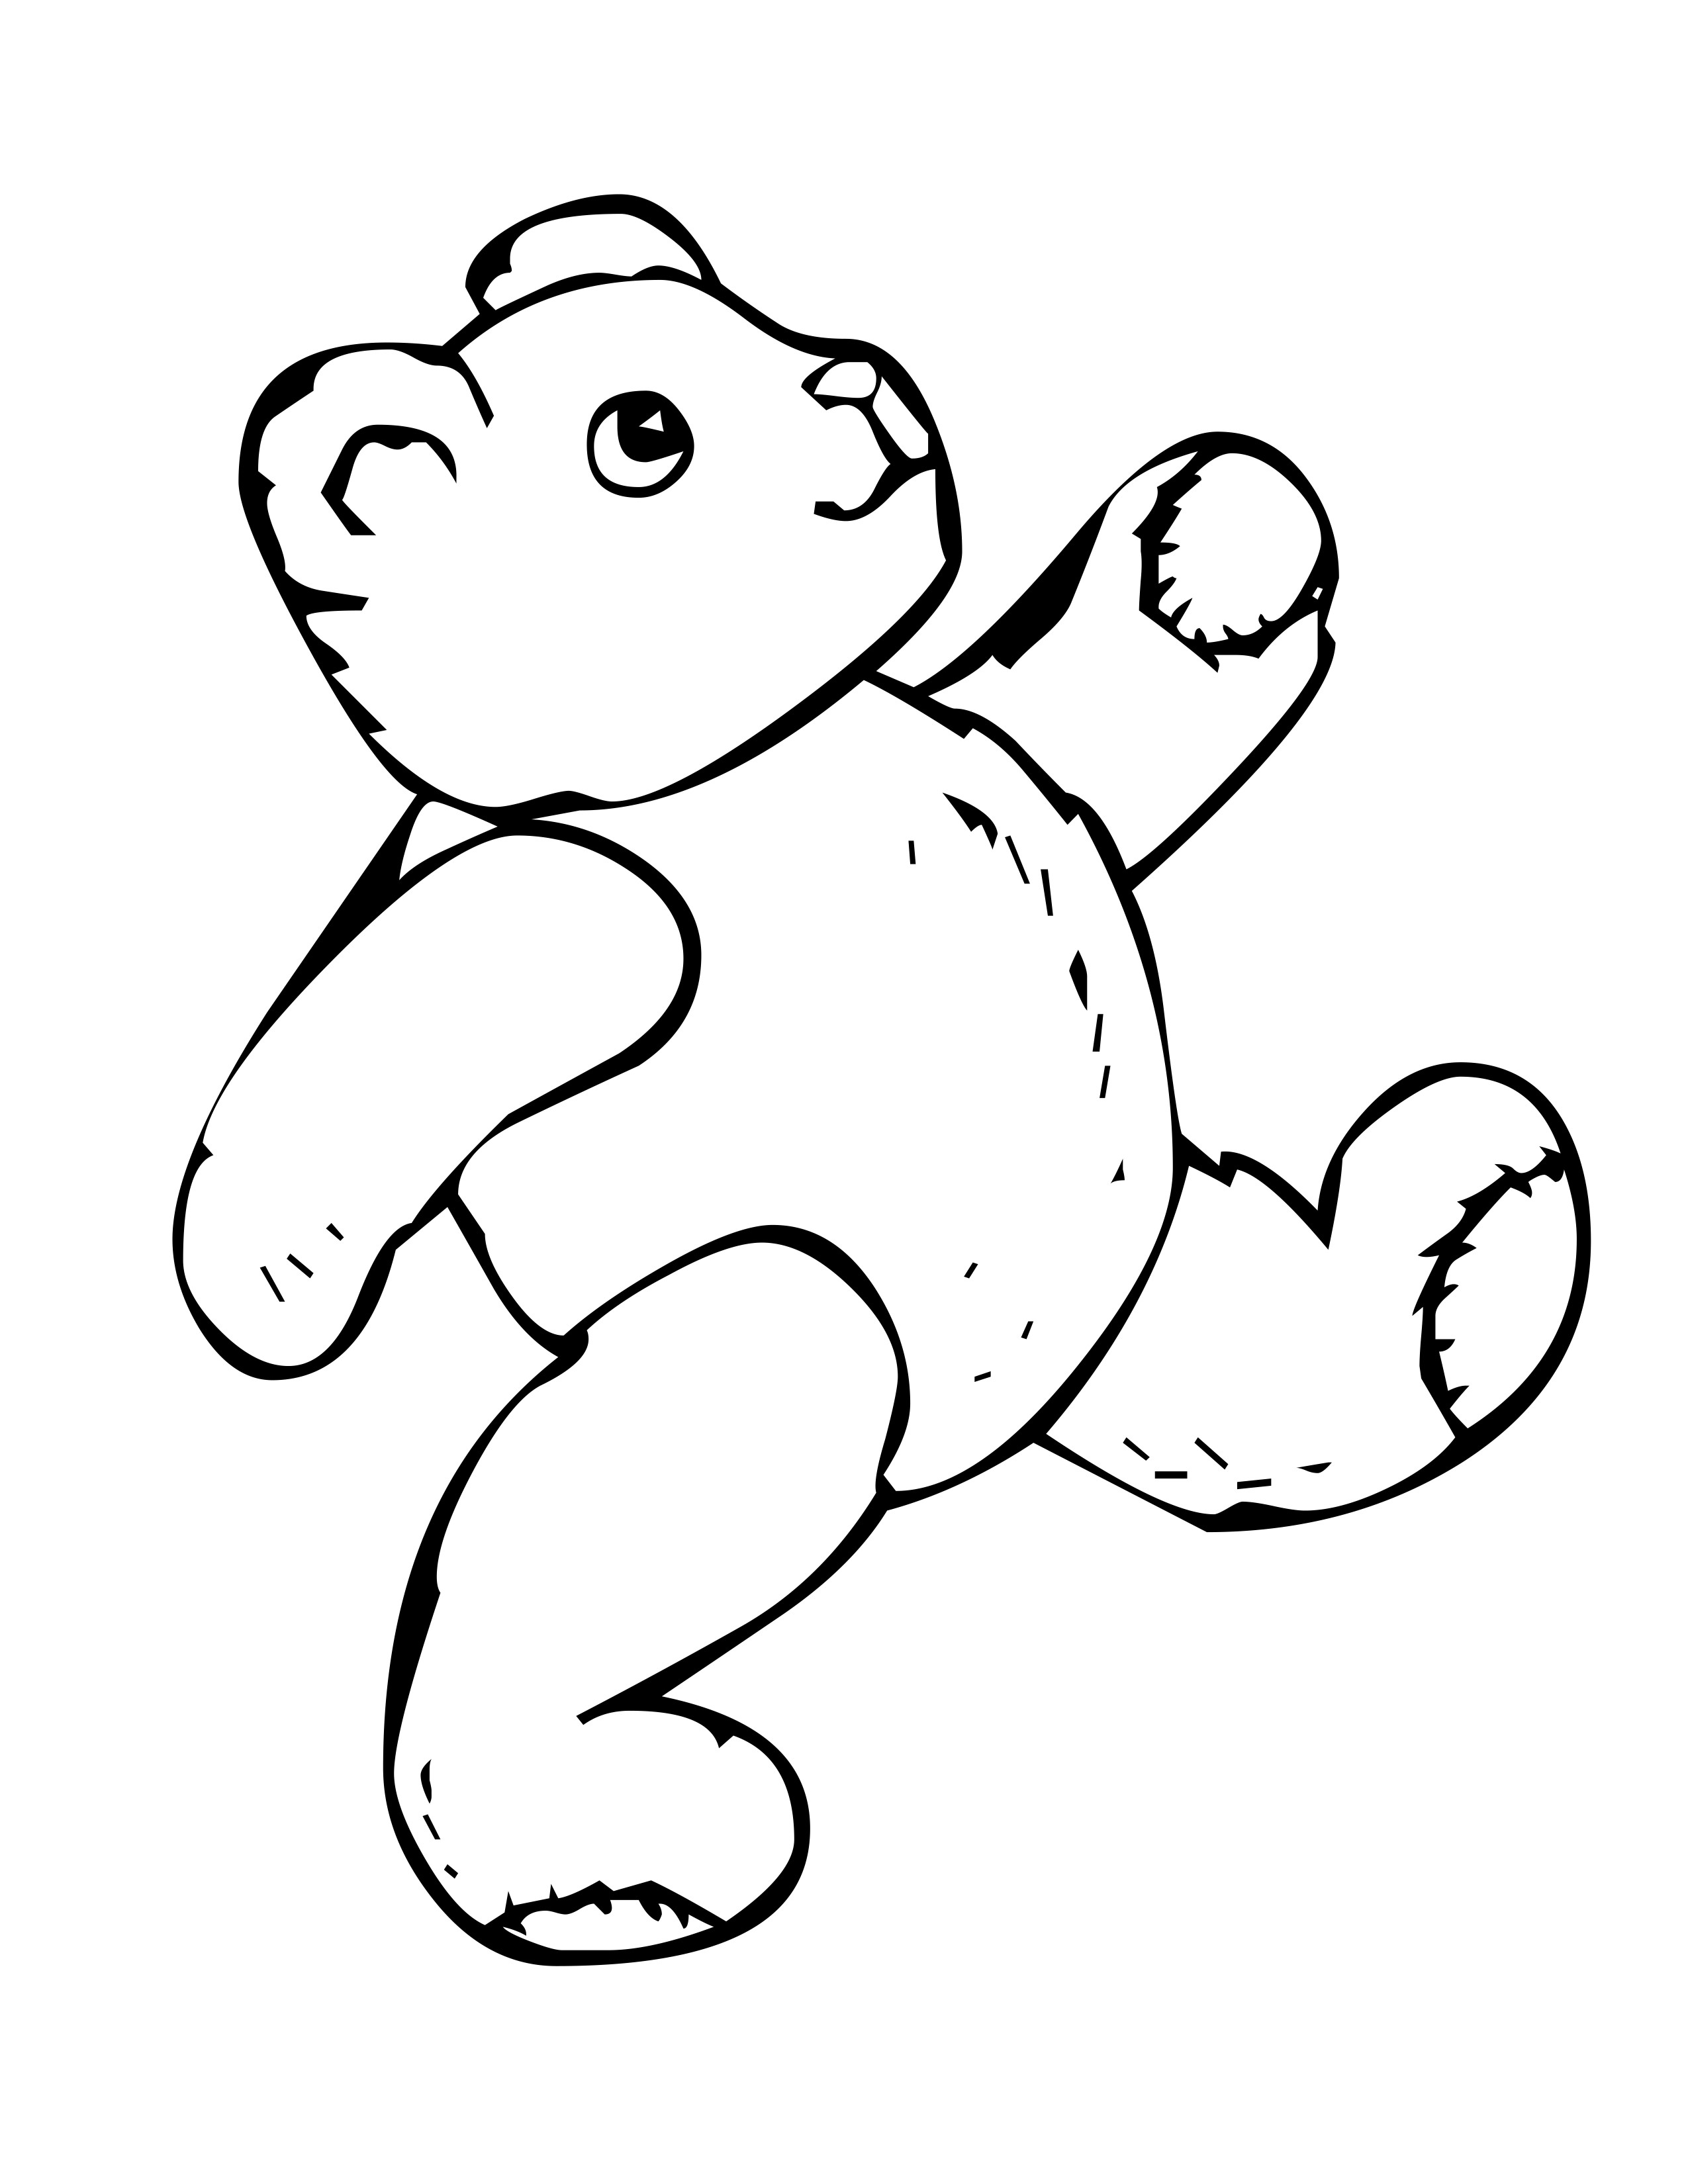 coloring picture of a bear free printable bear coloring pages for kids bear picture coloring of a